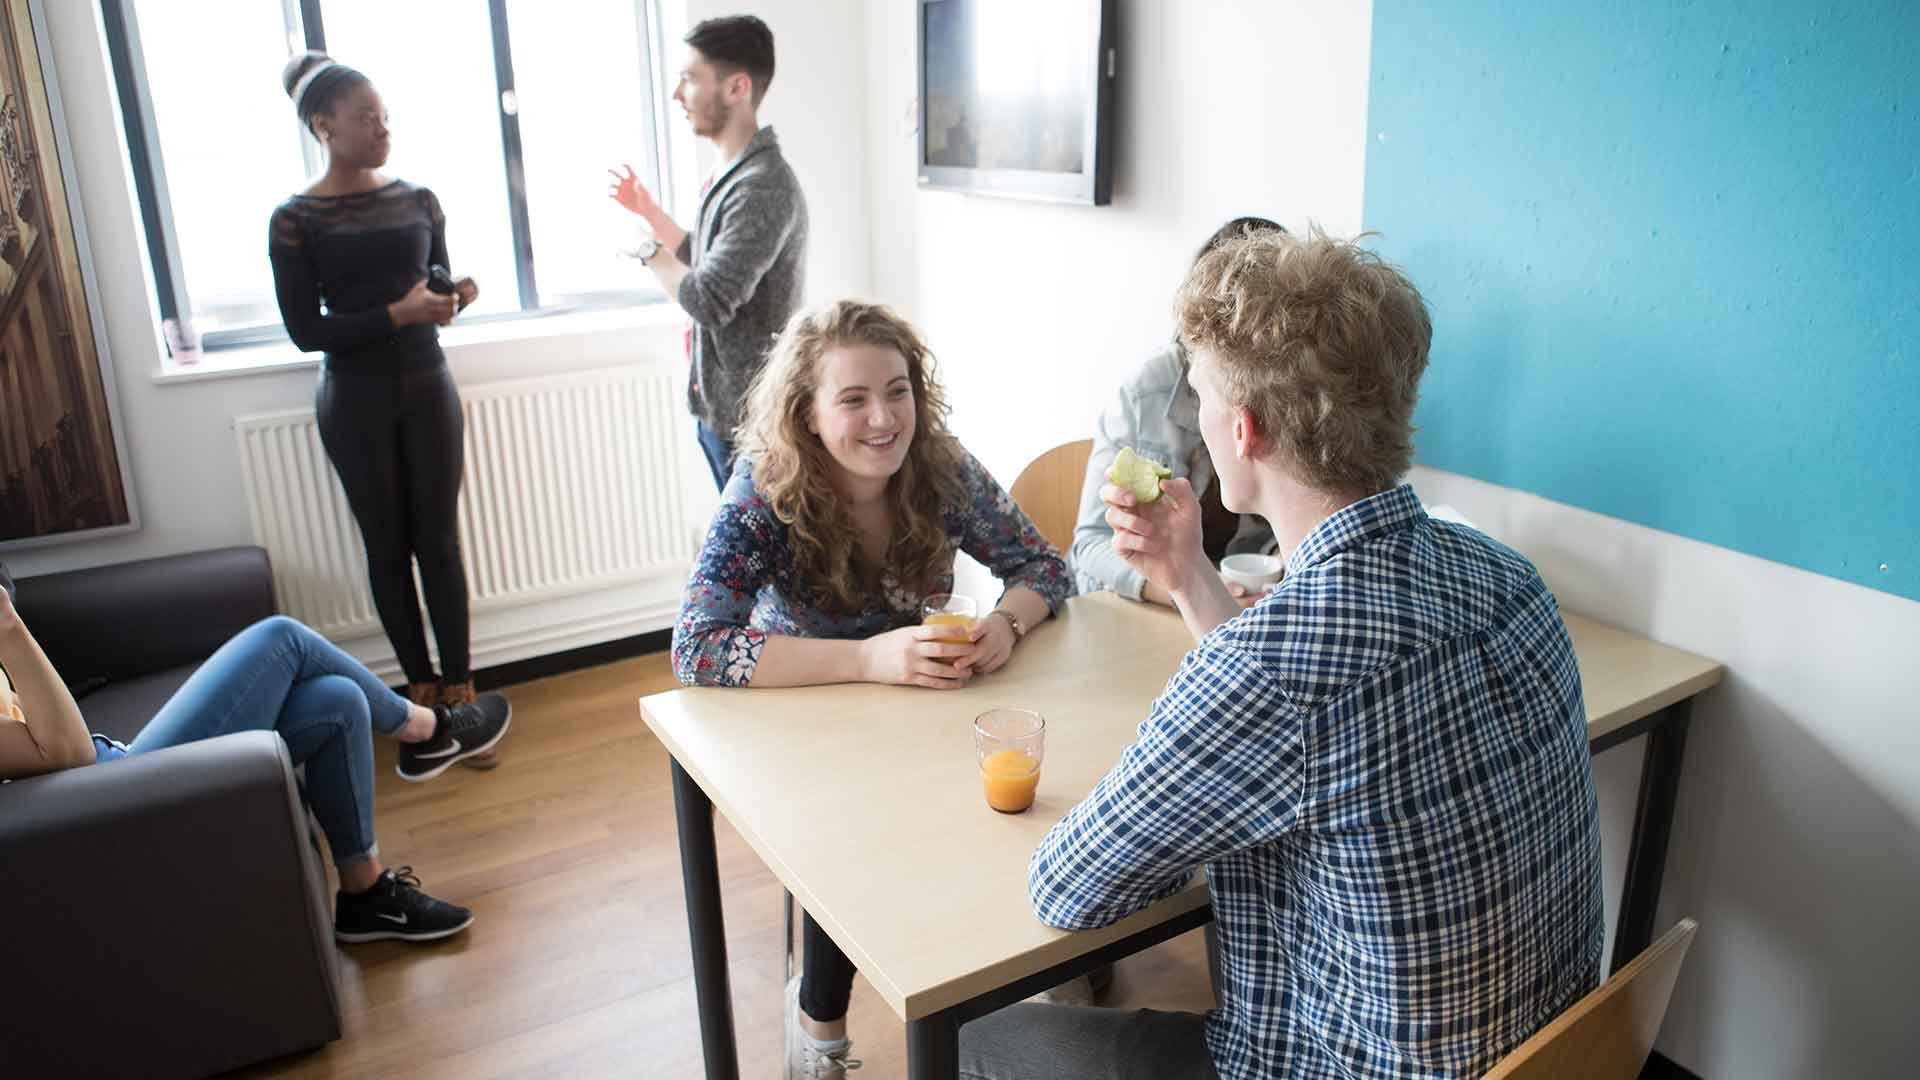 Students chatting in a kitchen.